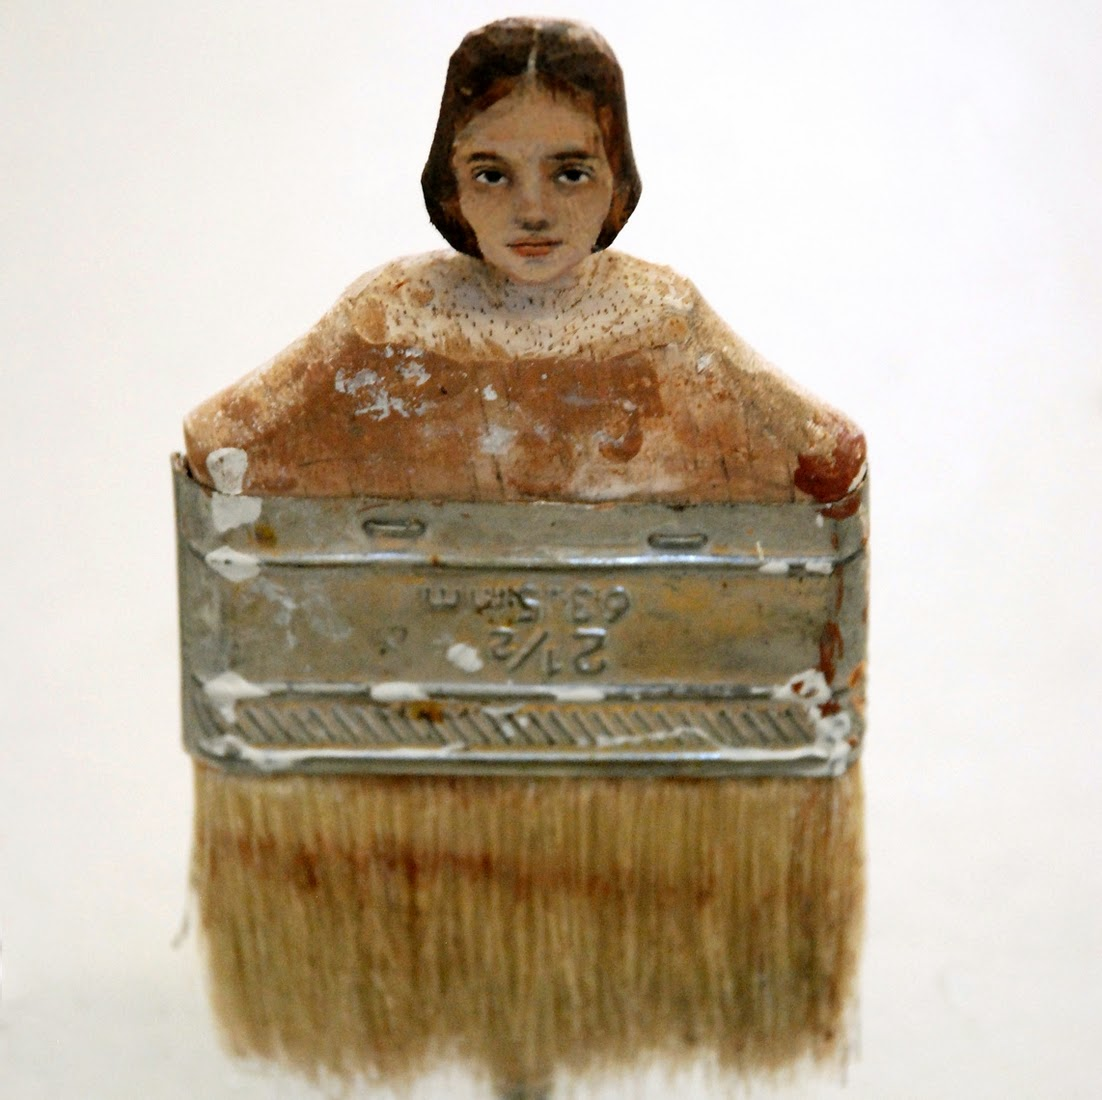 16-2-1-2-Rebecca-Szeto-Rebirth-Paintbrush-Sculpture-www-designstack-co